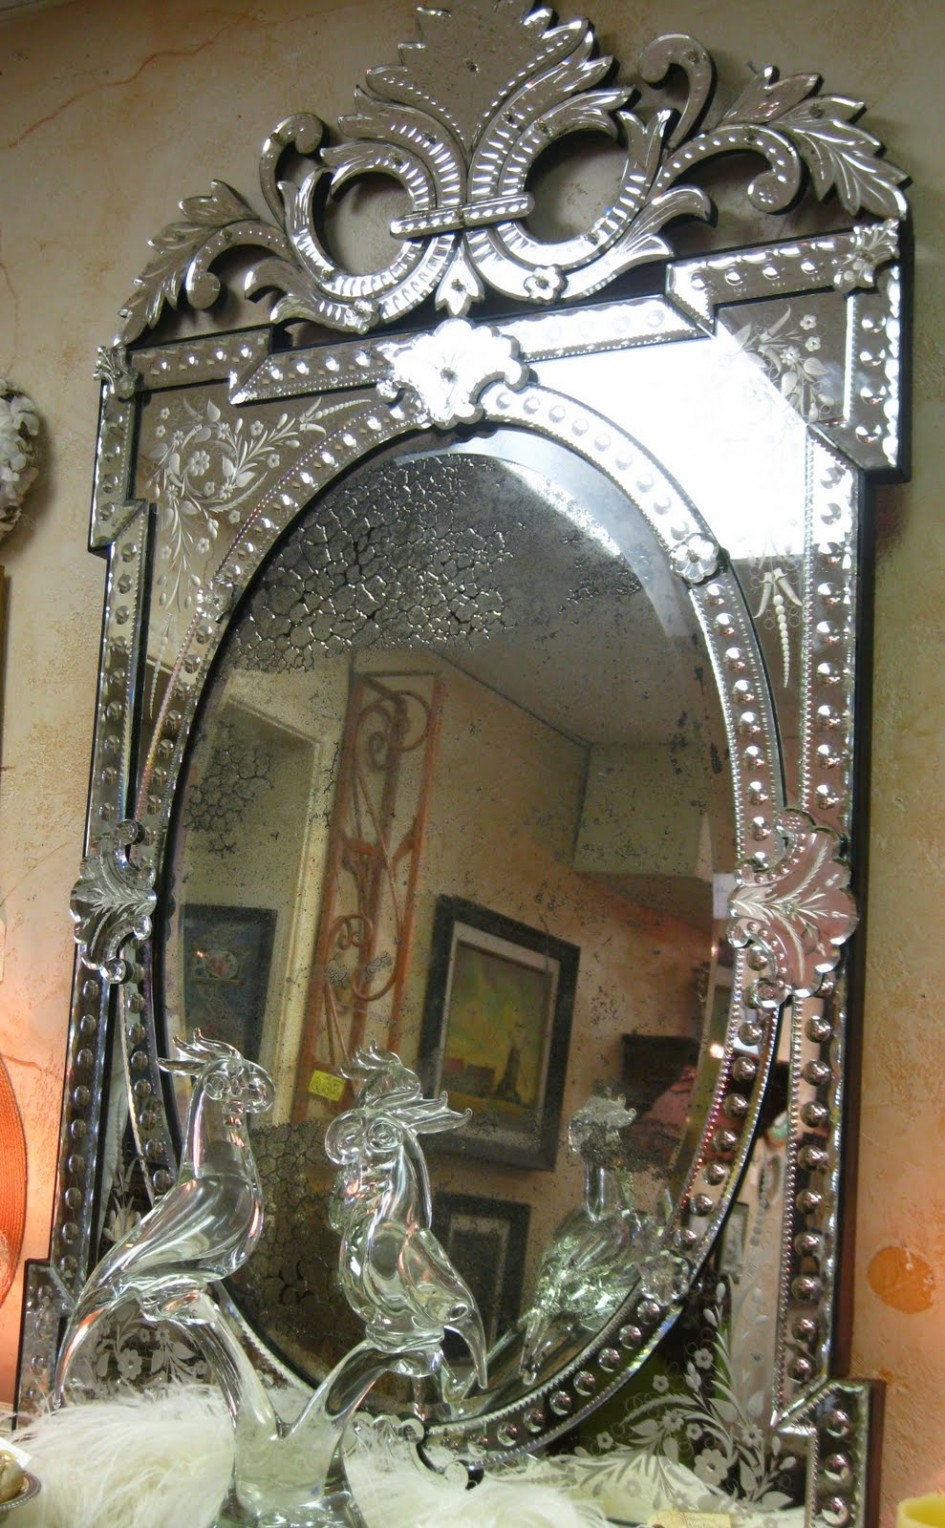 Antique Venetian Glass Mirror Intended For Venetian Glass Mirrors Antique (Image 2 of 15)